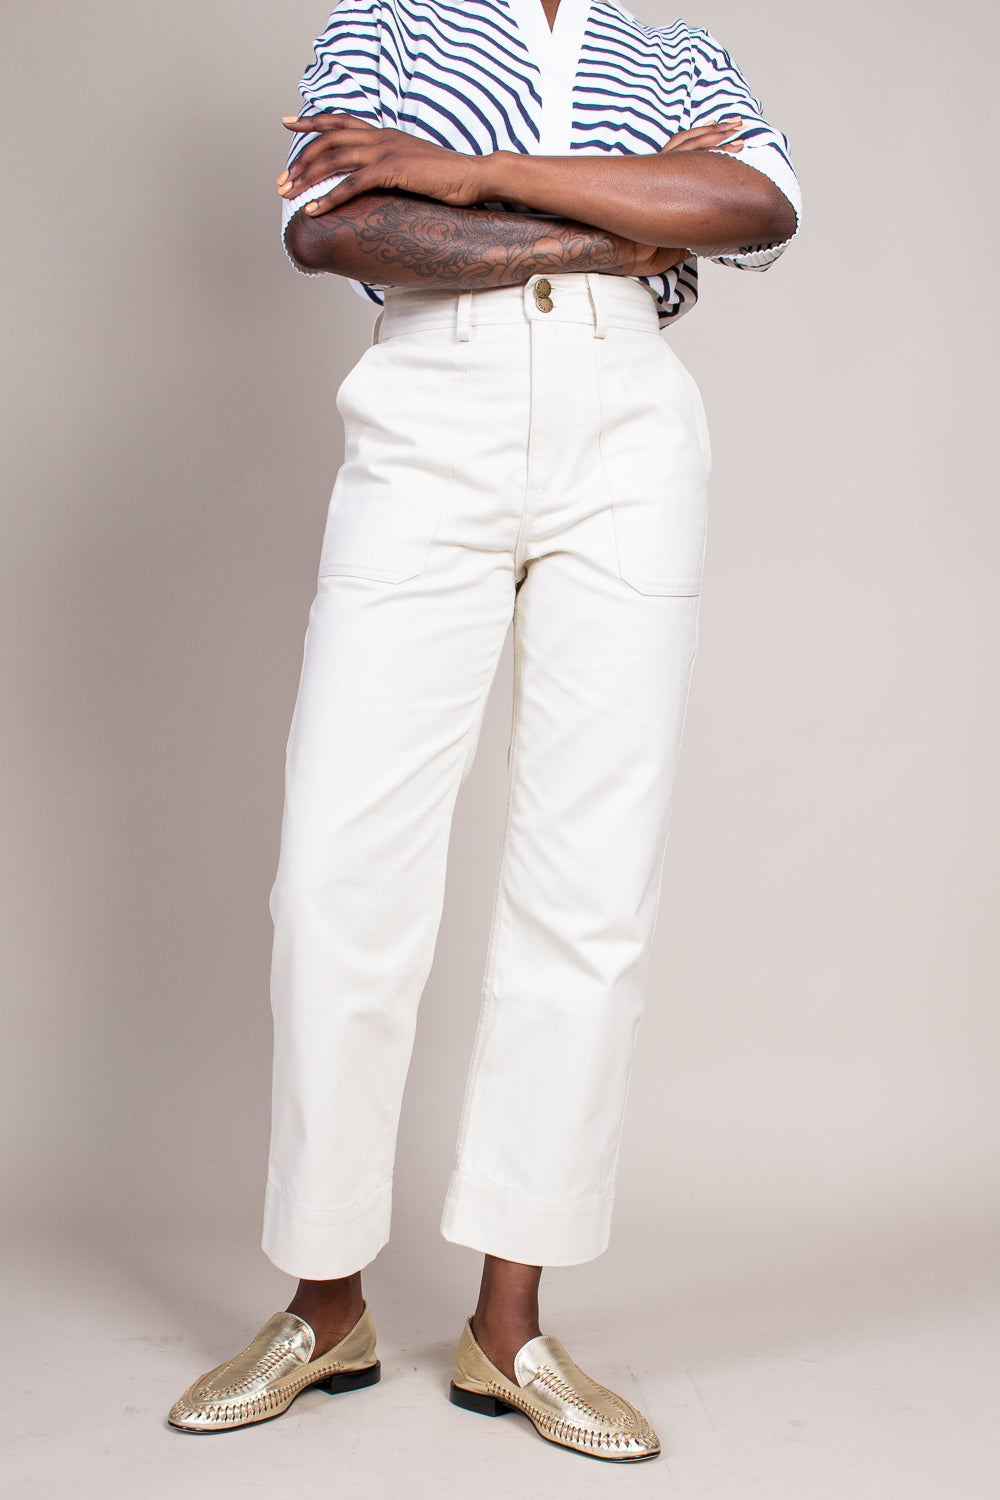 Victoire Painters Pant in Cream